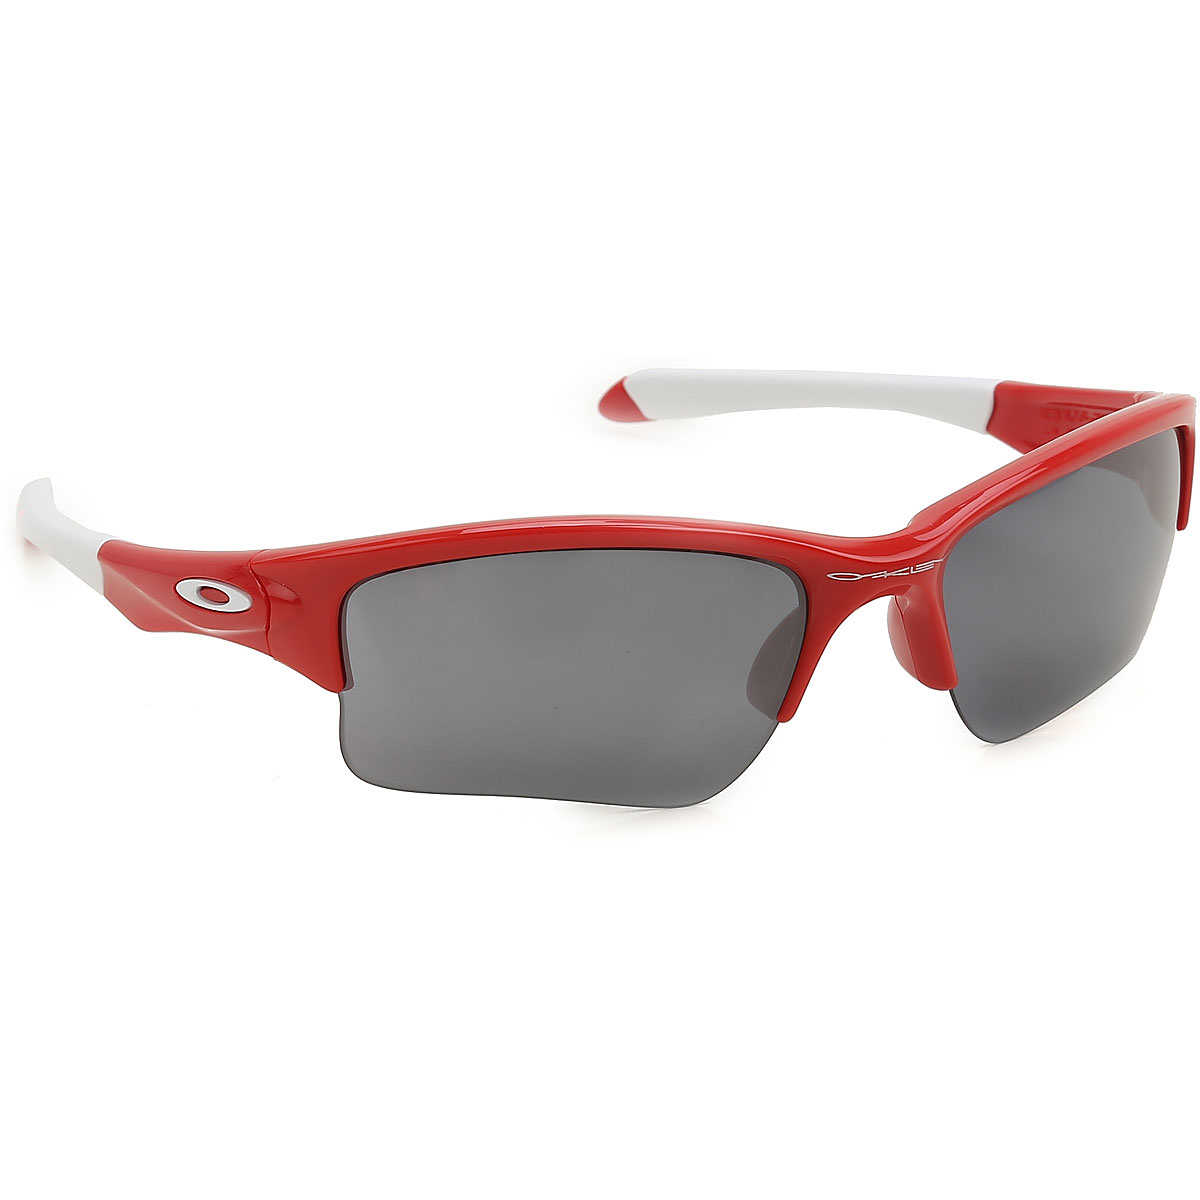 Oakley Kids Sunglasses for Boys On Sale in Outlet Red - GOOFASH - Mens SUNGLASSES